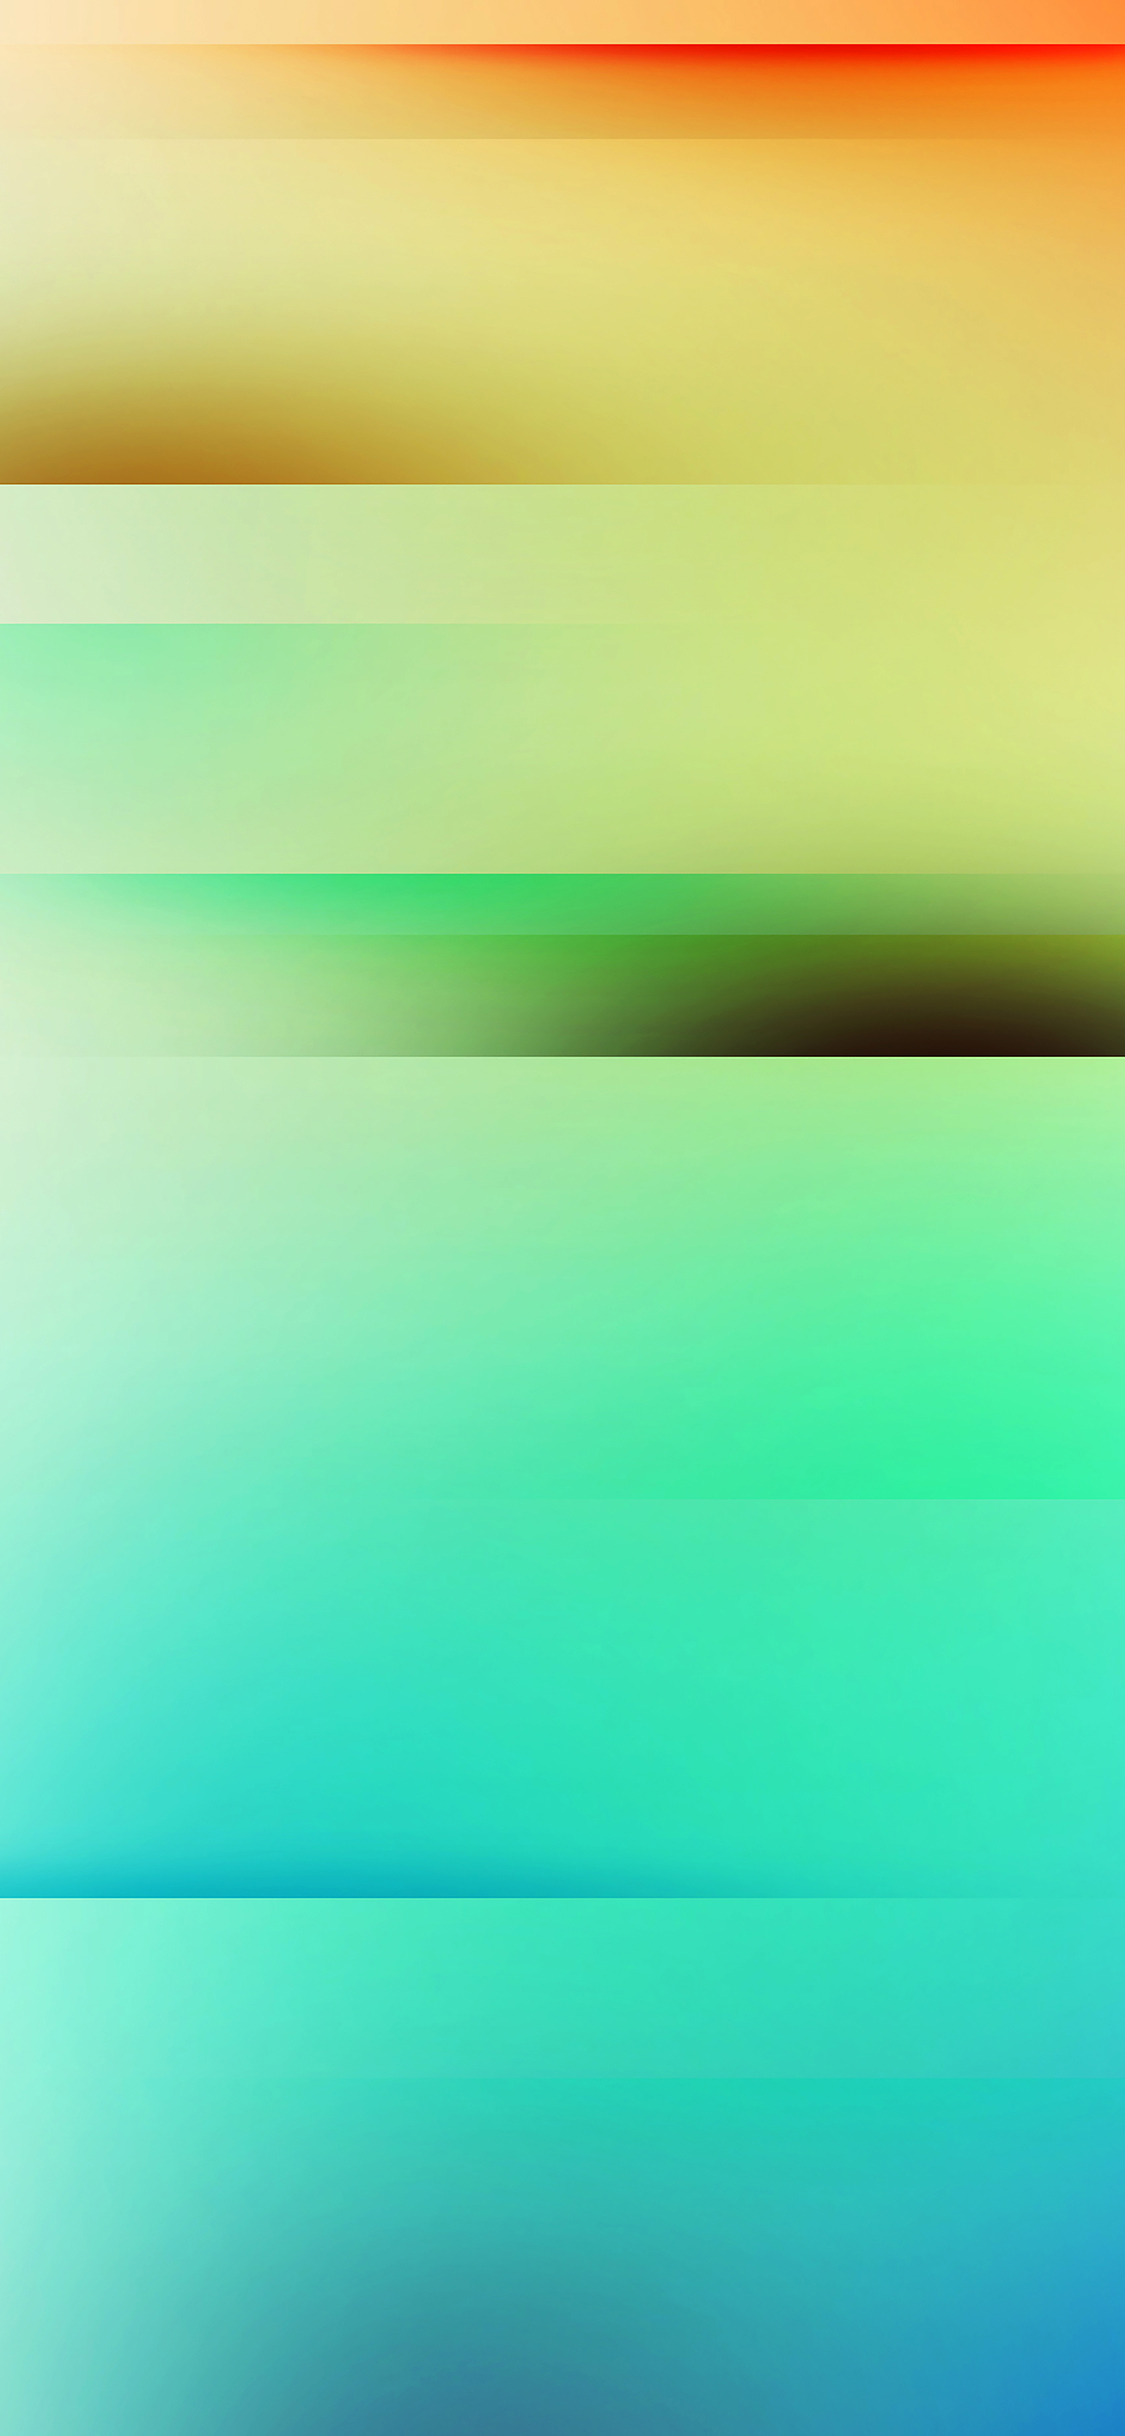 iPhonexpapers.com-Apple-iPhone-wallpaper-ve63-colorful-horizontal-lines-abstract-pattern-art